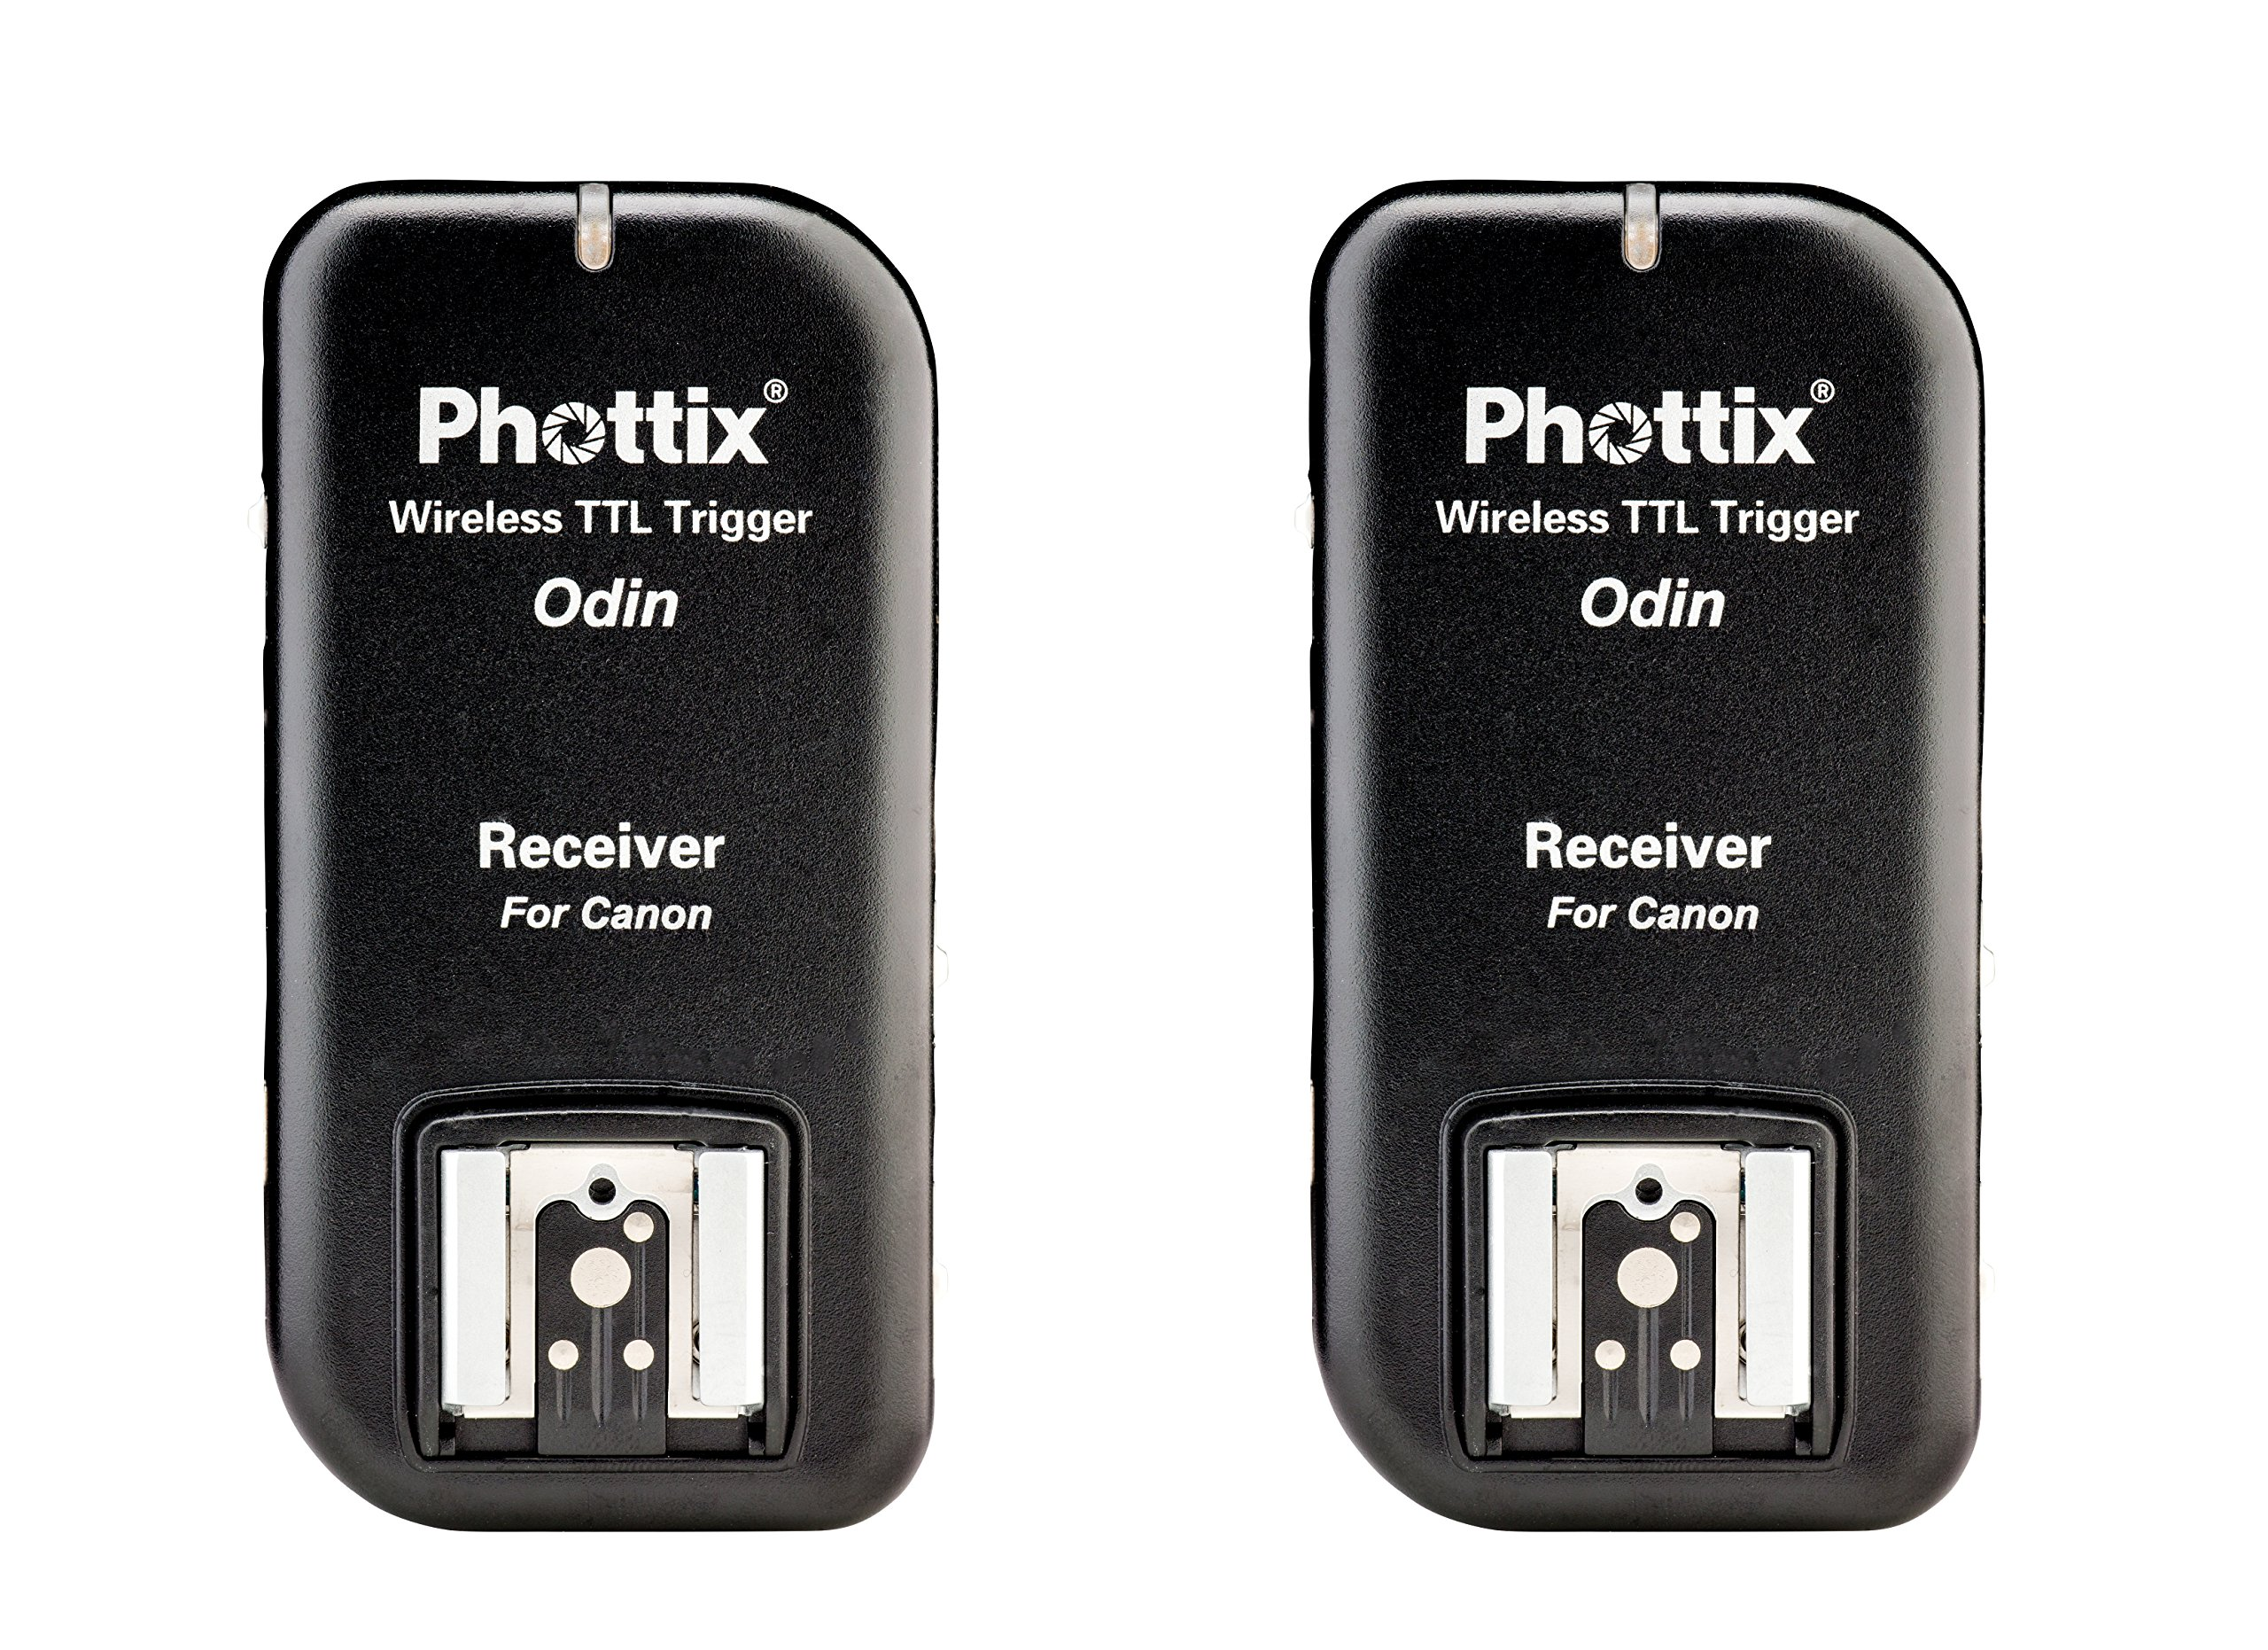 Phottix Odin TTL Wireless Flash Trigger v1.5 for Canon - Receiver 2-Pack (PH89062) by Phottix